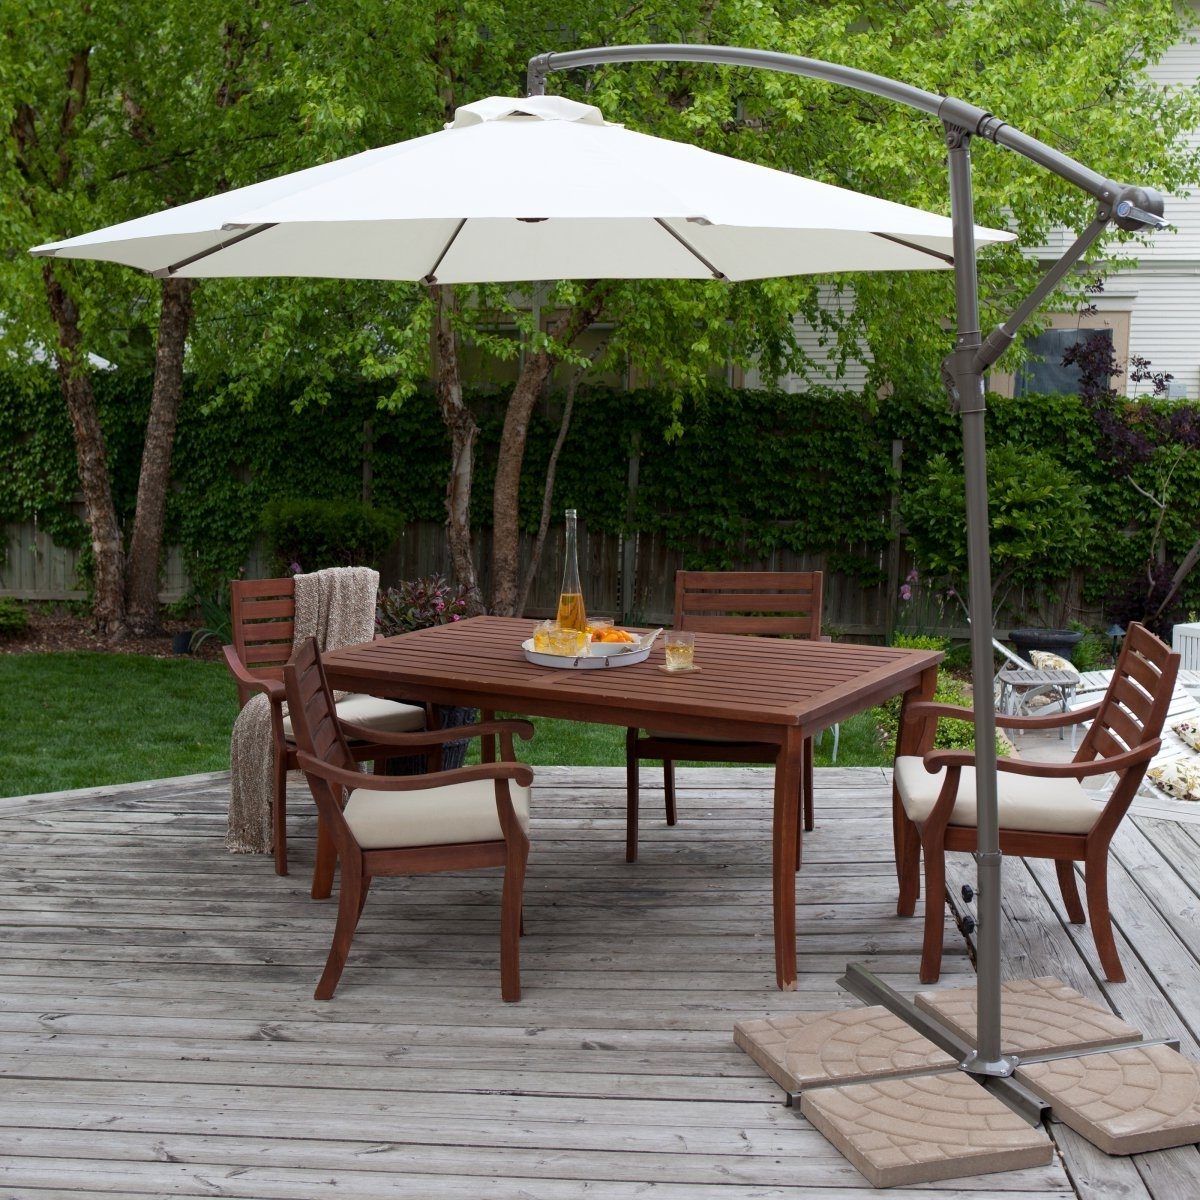 2019 The Patio Table Umbrella For Comfort Gathering — Mistikcamping Home Inside Patio Tables With Umbrellas (Gallery 7 of 20)